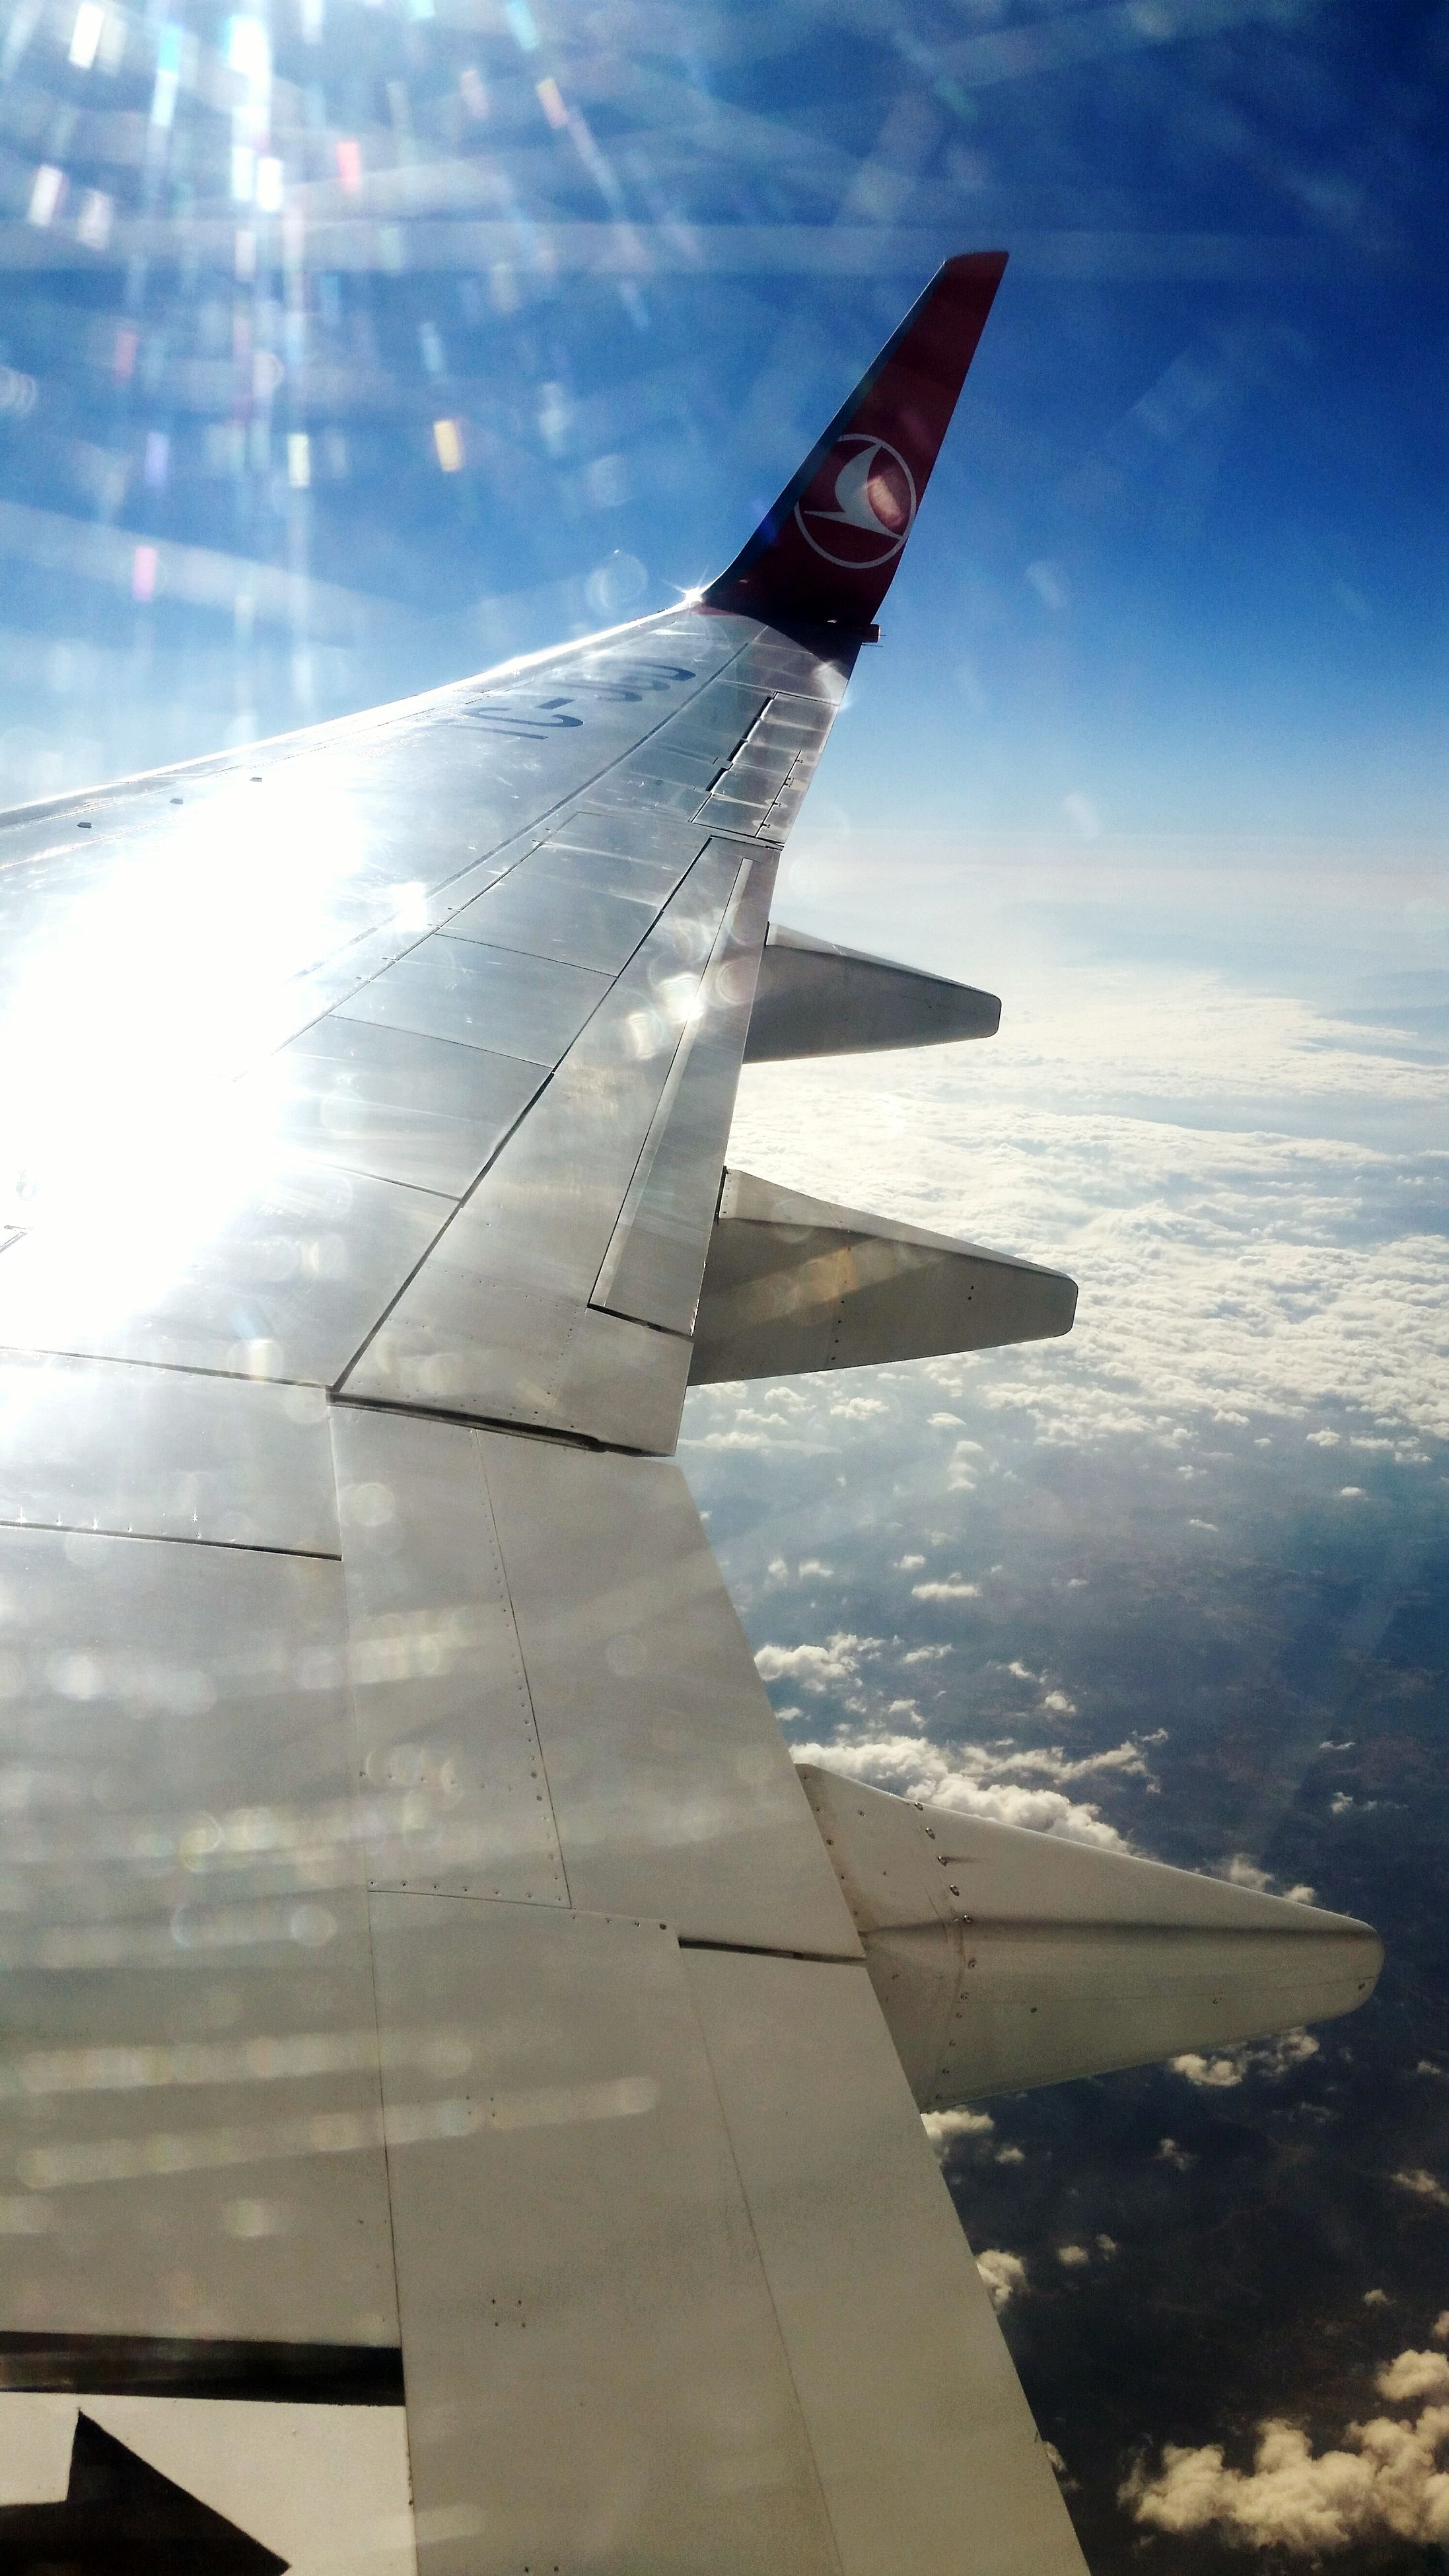 aircraft wing, sky, cloud - sky, sunlight, part of, cloud, aerial view, nature, scenics, cropped, beauty in nature, outdoors, sun, day, no people, sunbeam, tranquility, blue, tranquil scene, cloudy, landscape, cloudscape, idyllic, weather